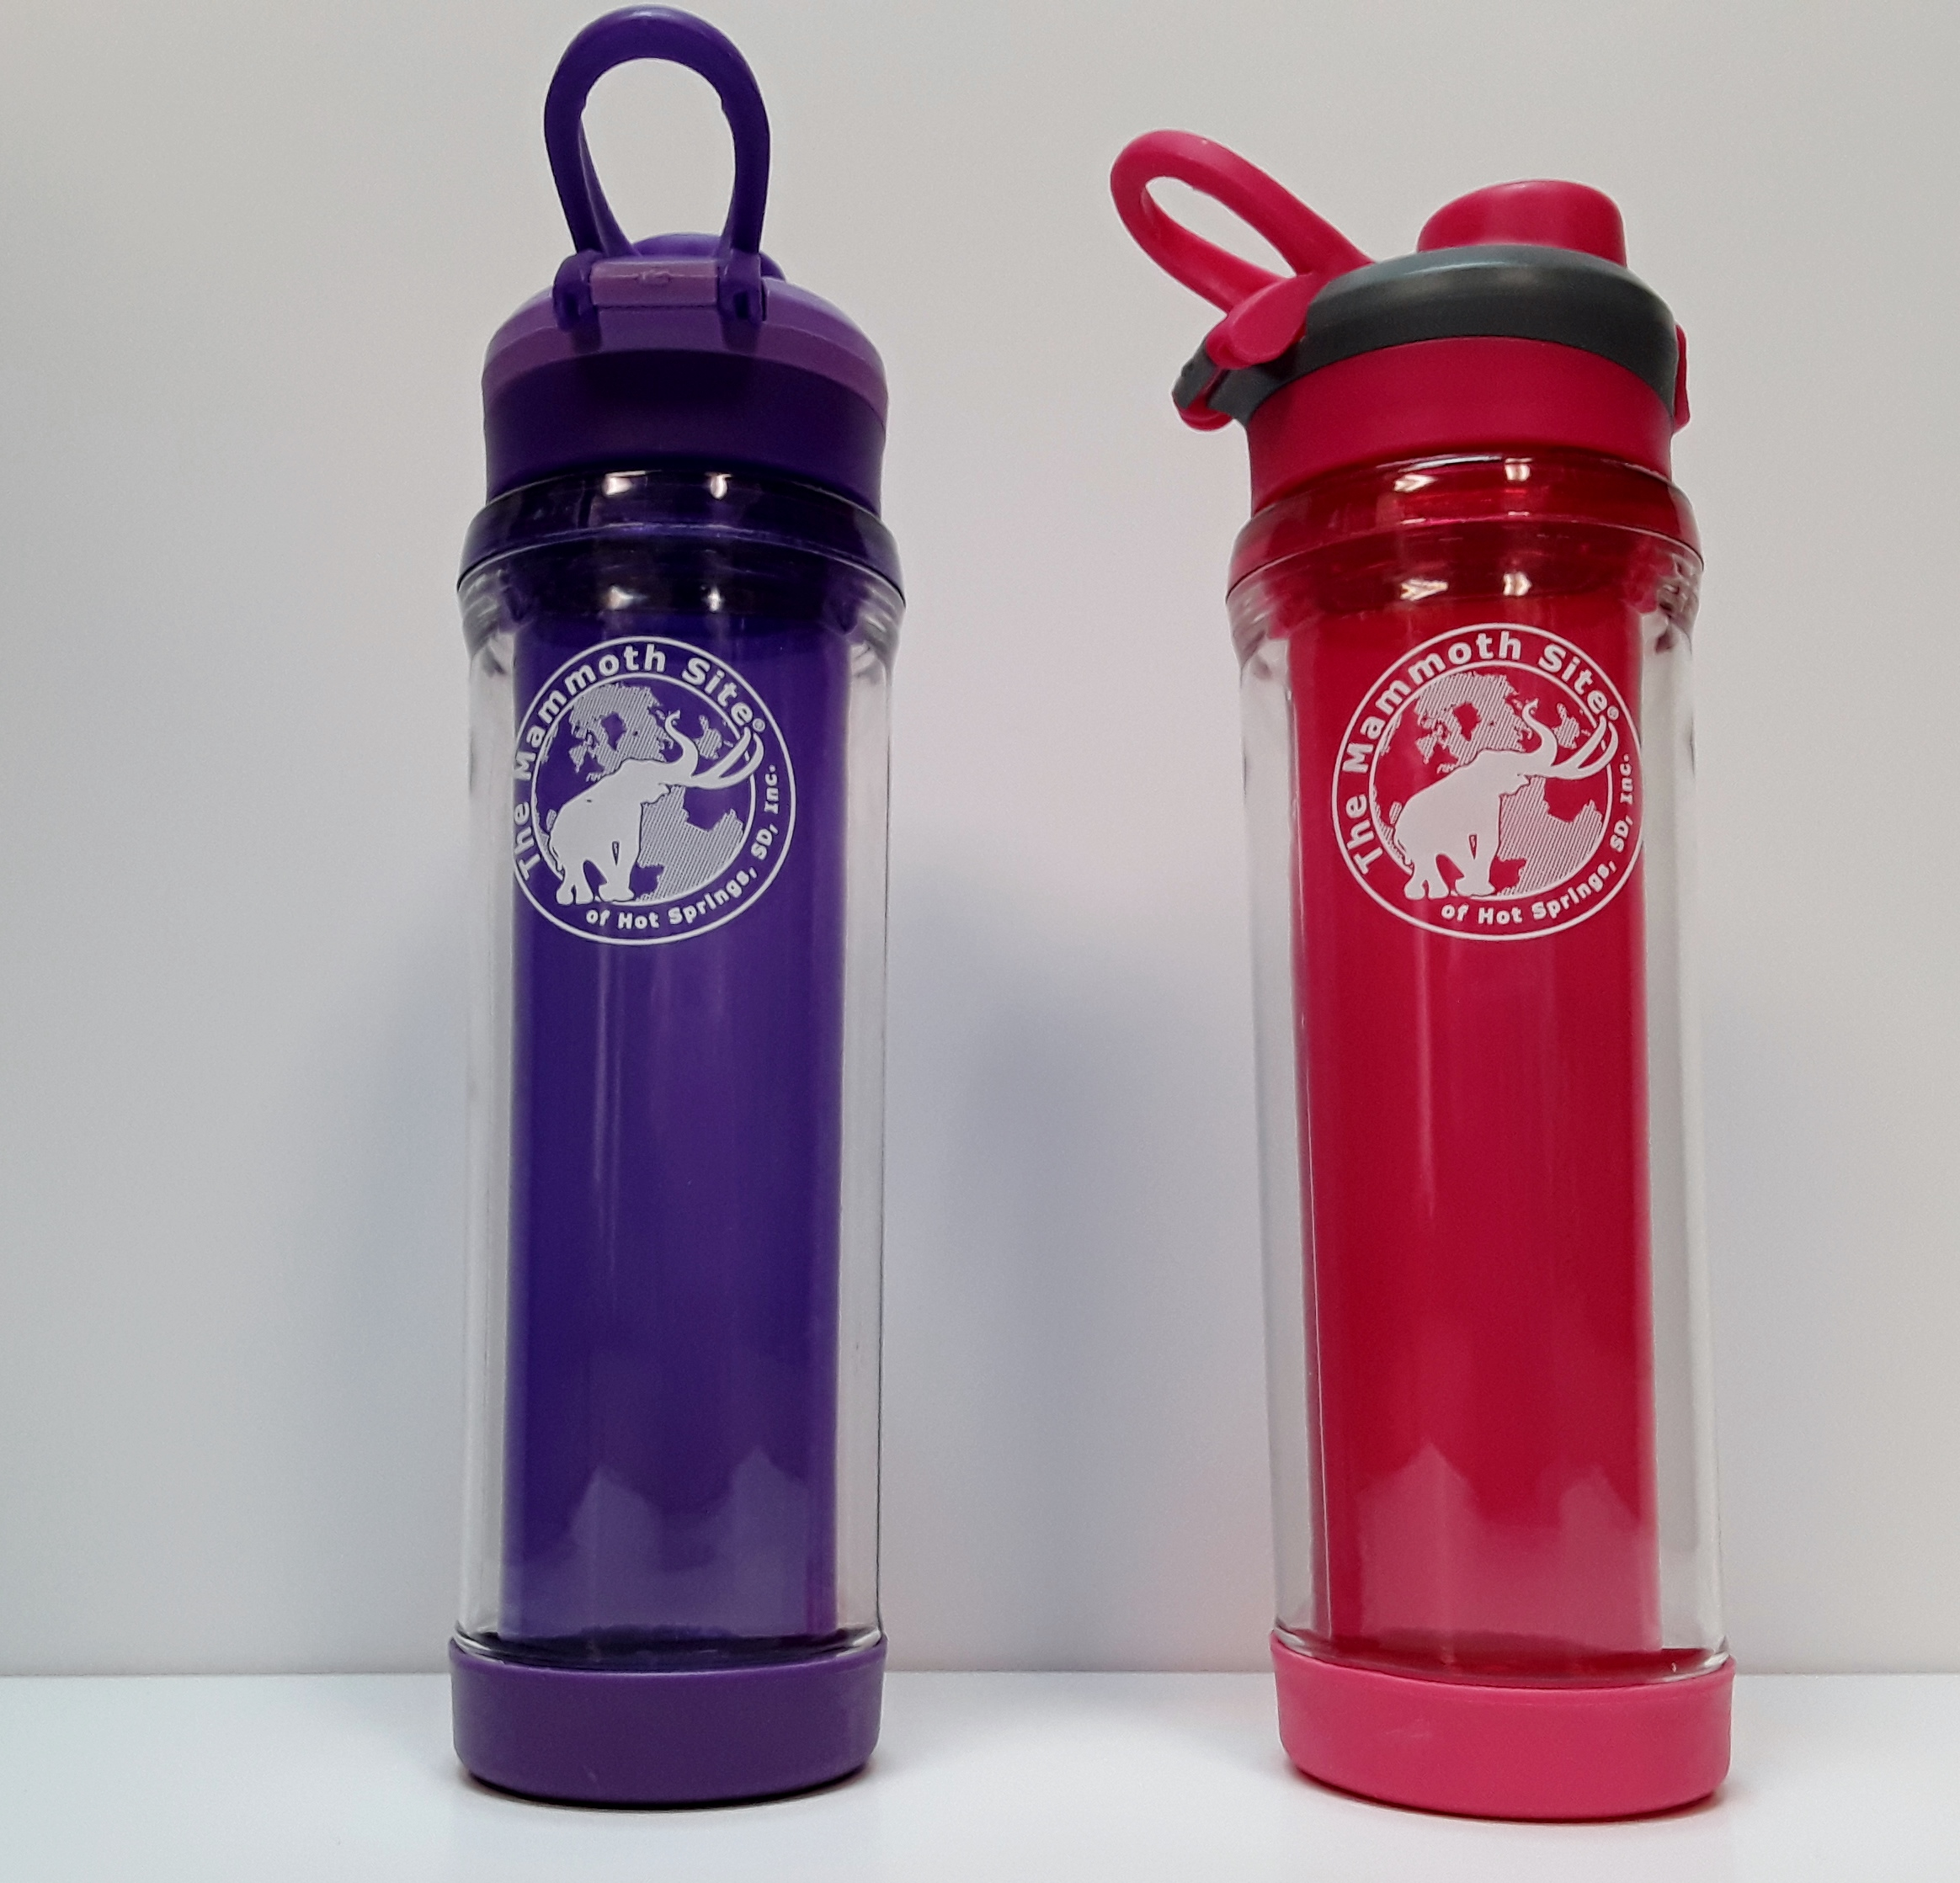 15 oz Mammoth Site Water Bottles